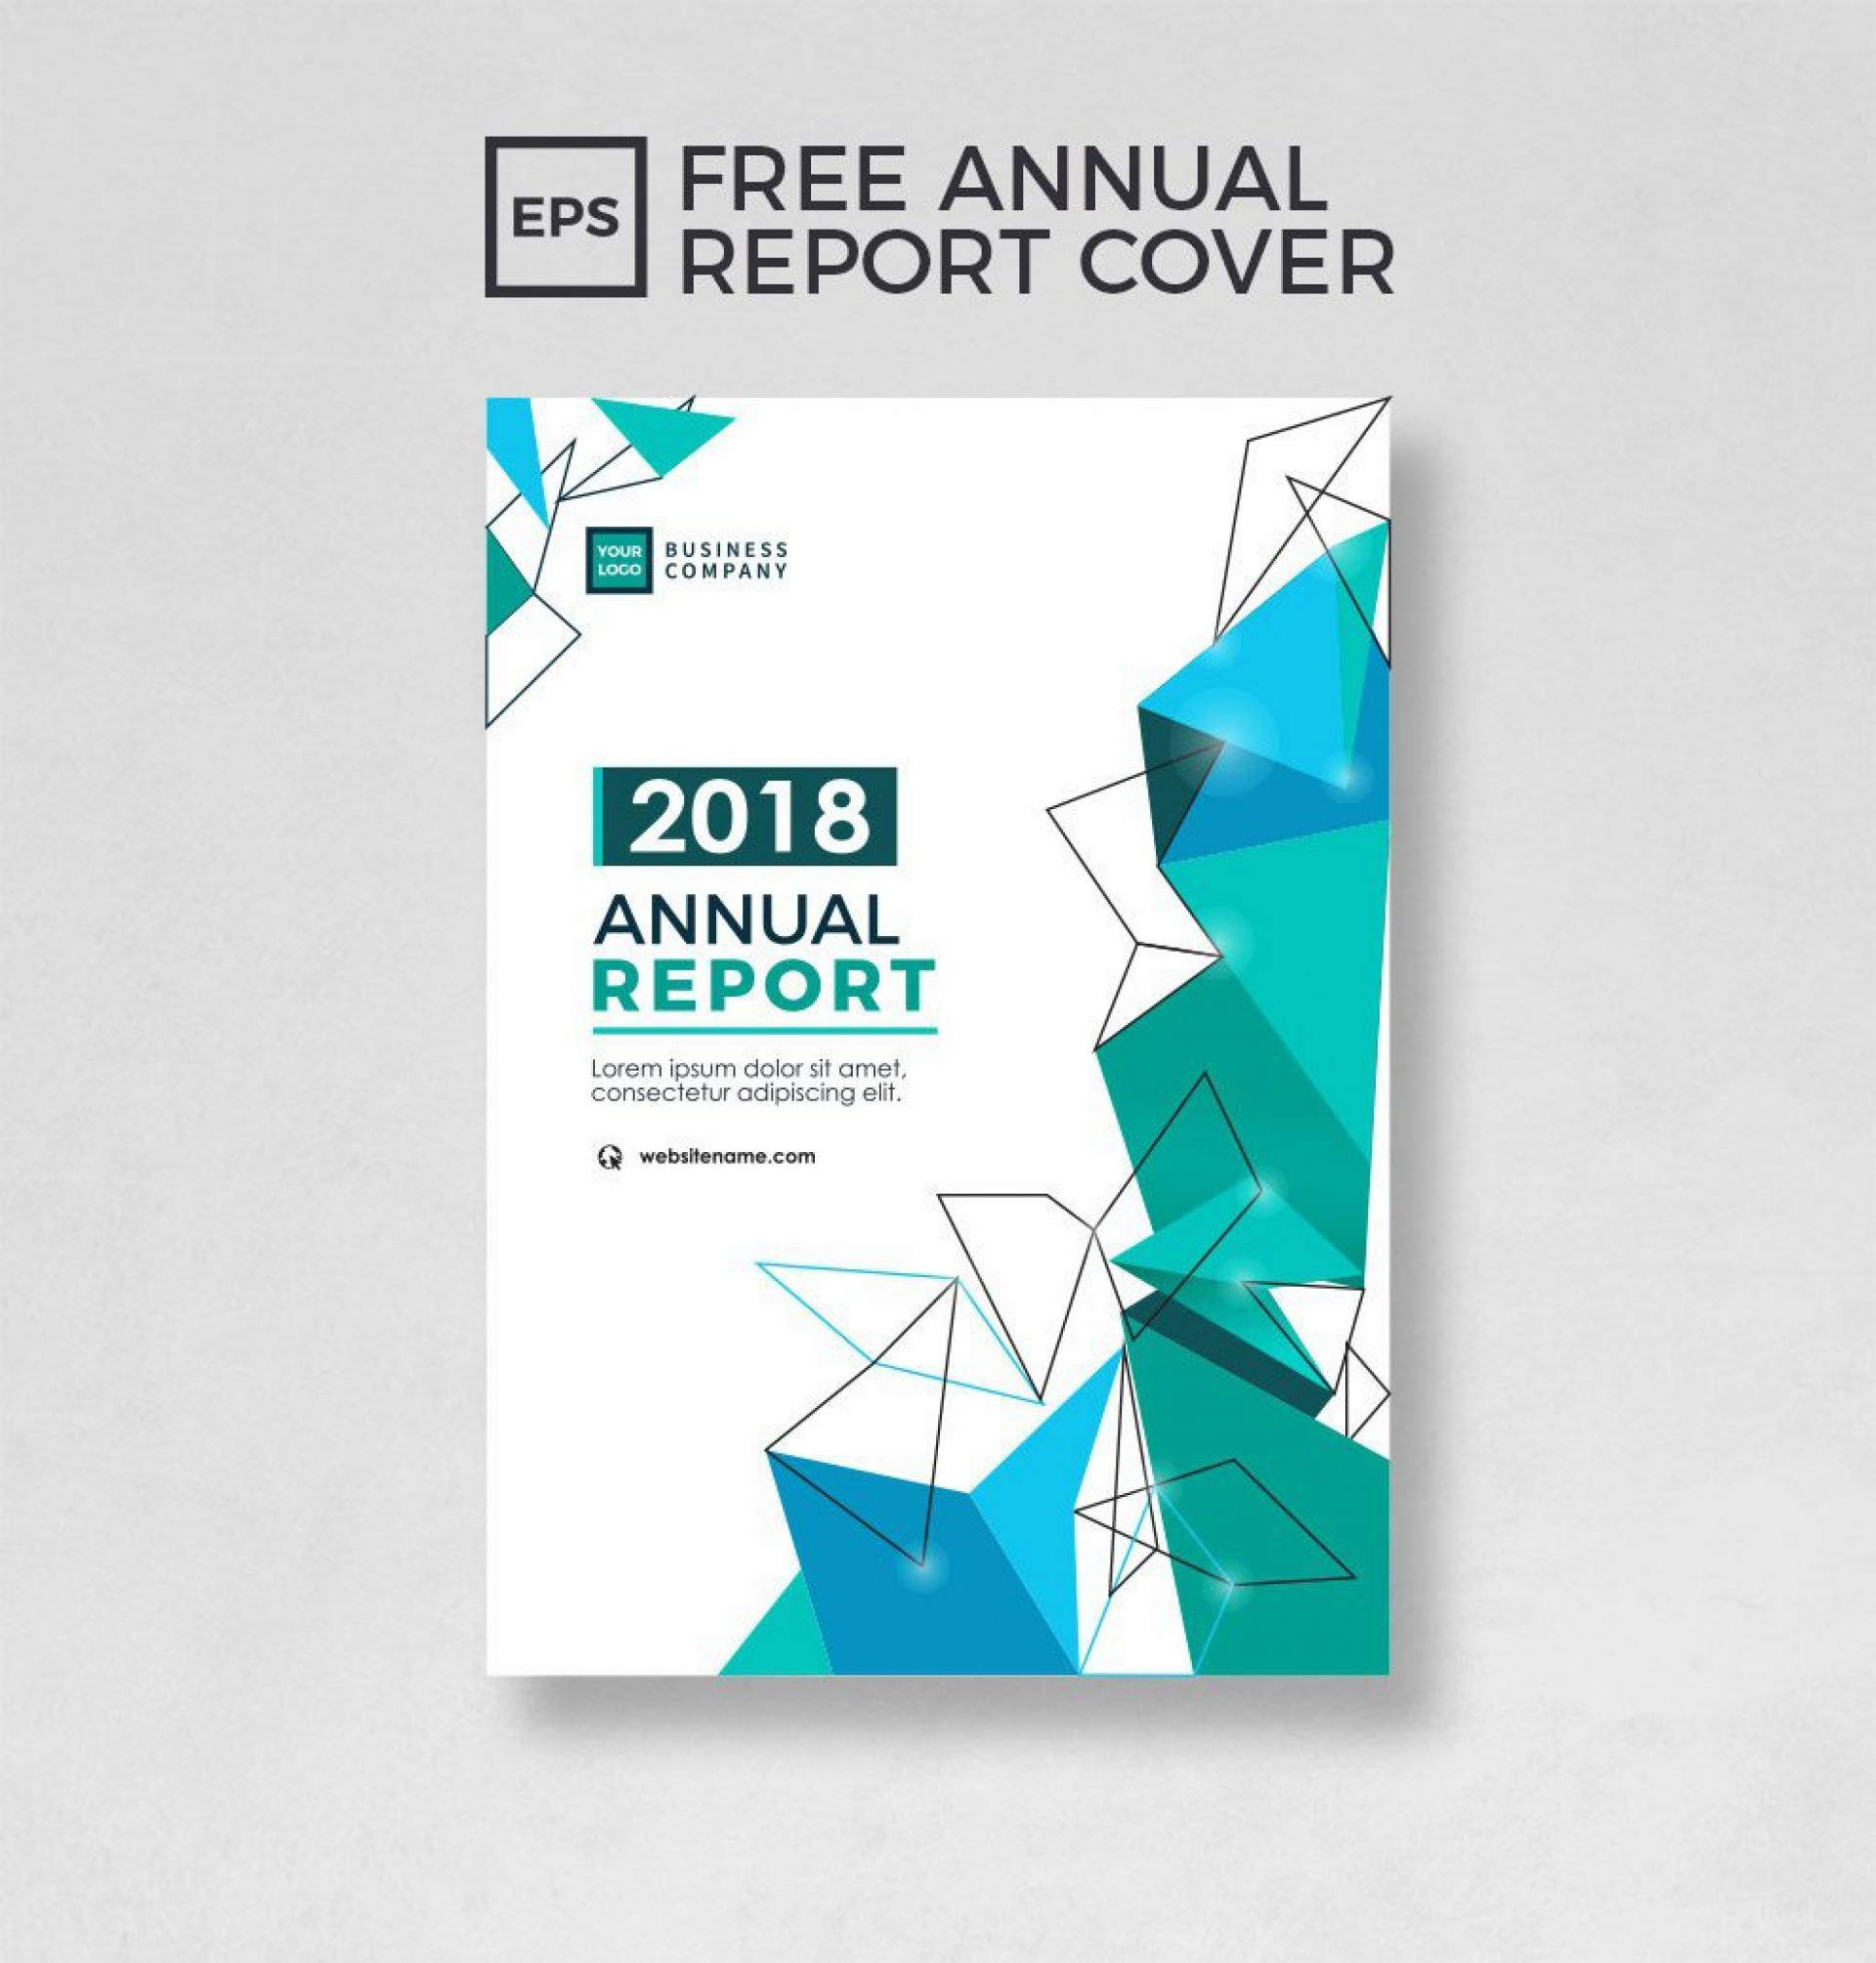 000 Exceptional Free Download Annual Report Cover Design Template High Definition  Indesign In Word1920